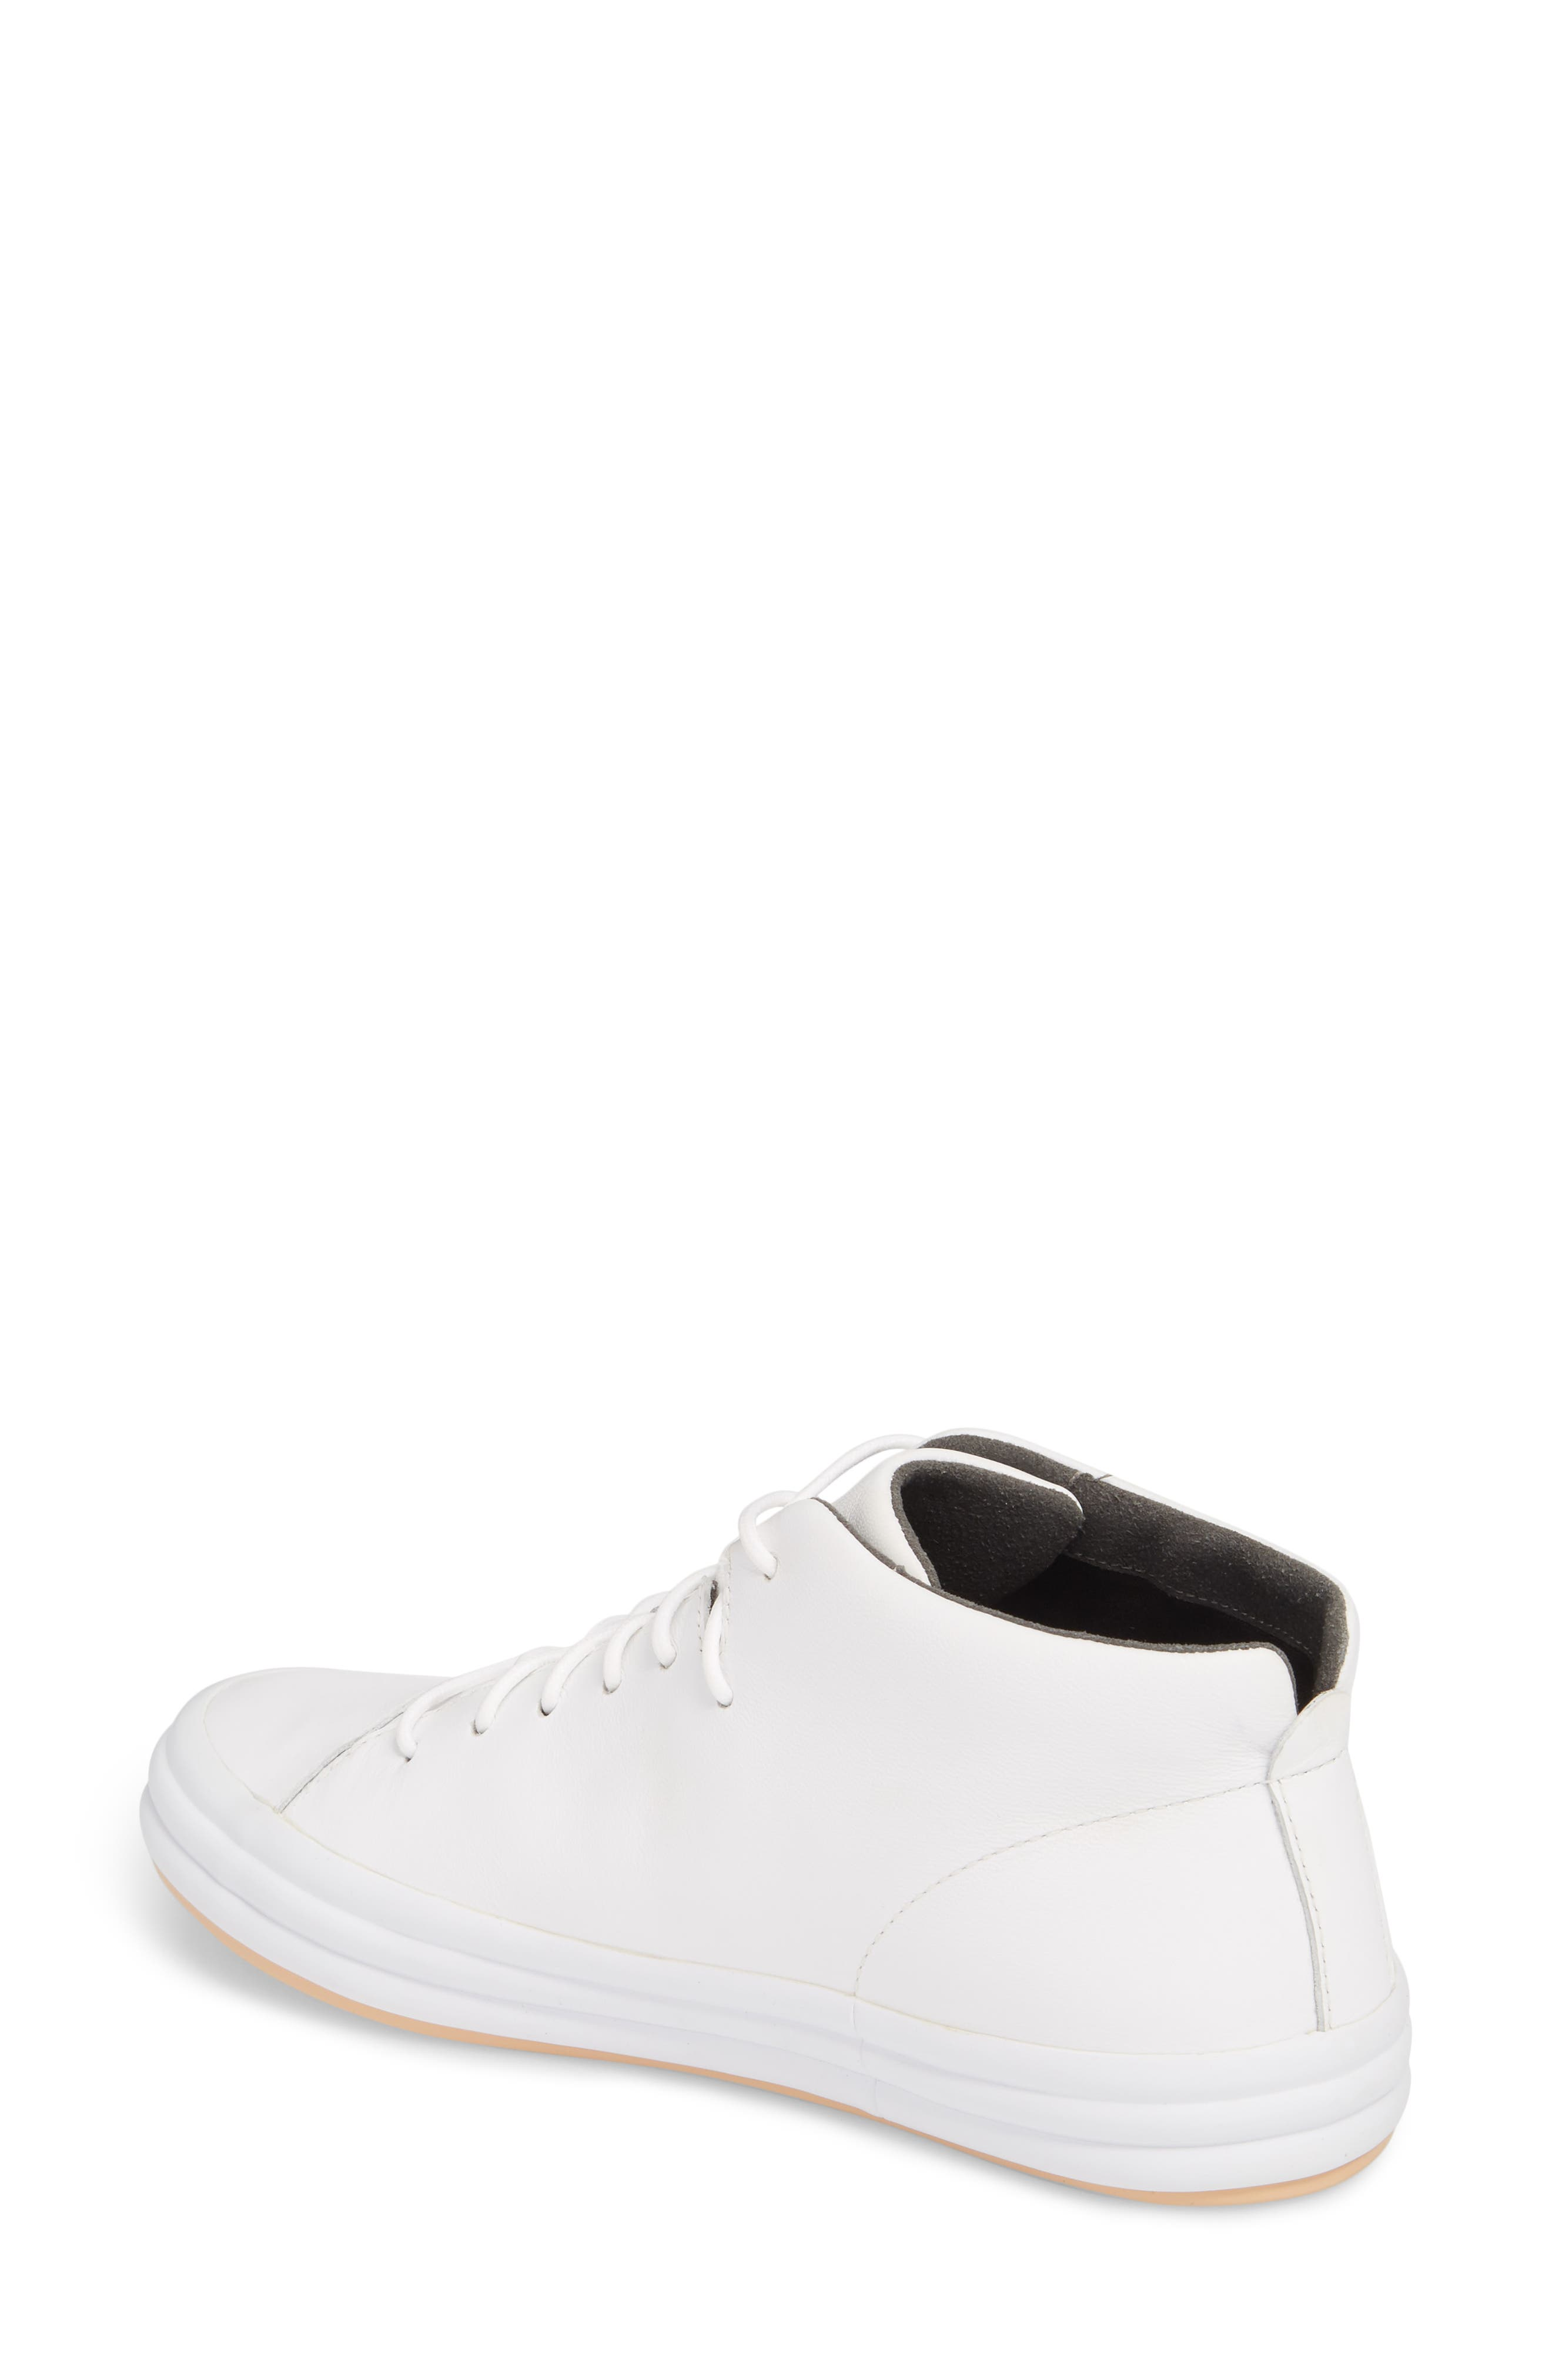 Hoops Mid Top Sneaker,                             Alternate thumbnail 2, color,                             WHITE NATURAL LEATHER